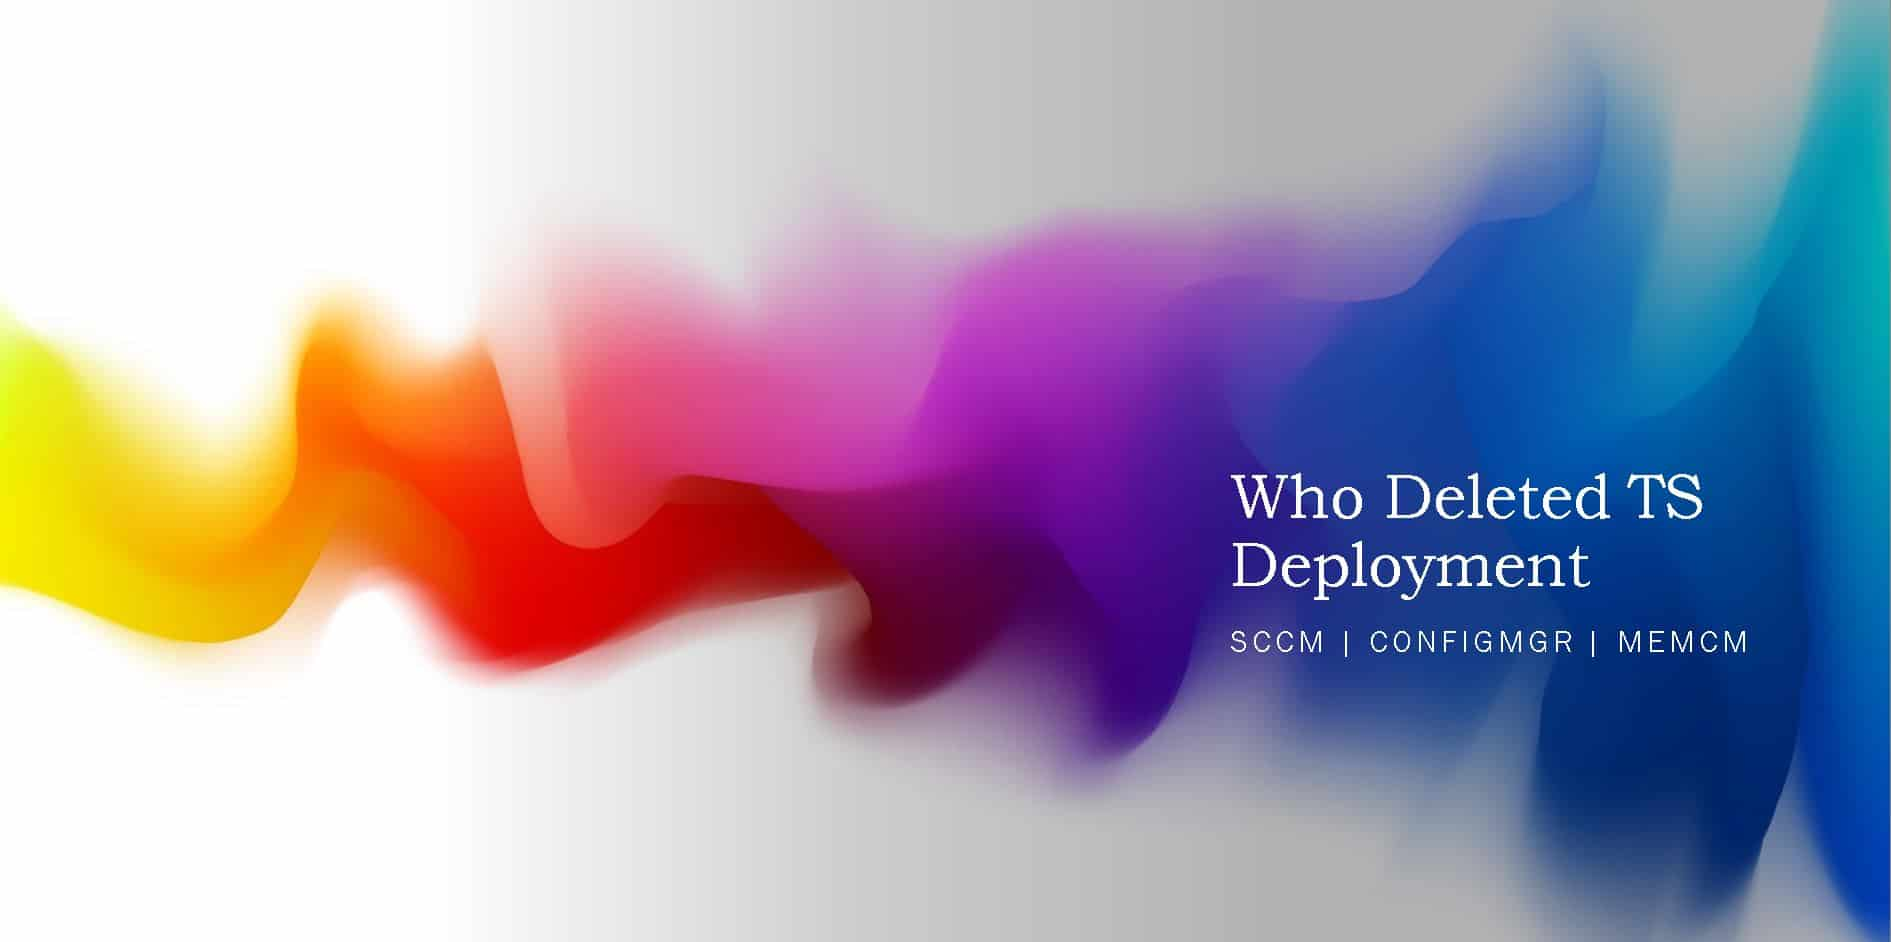 Who Deleted SCCM Task Sequence Deployment